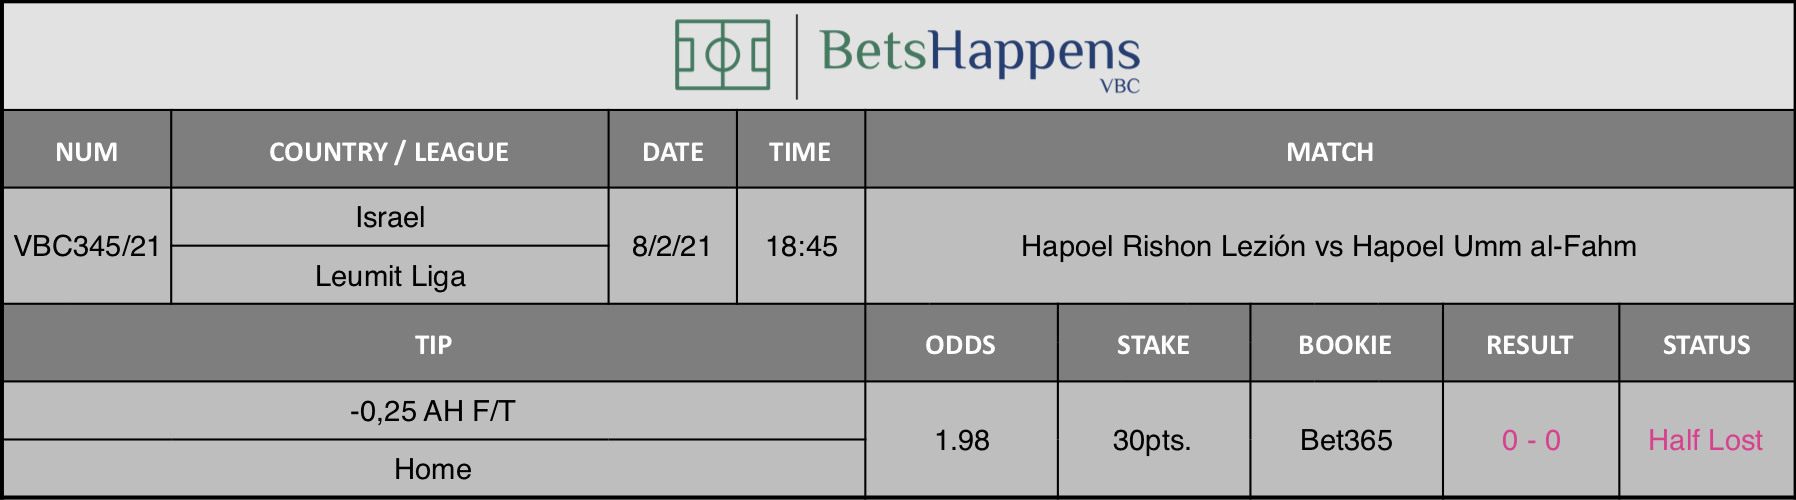 Results of our tip for the Hapoel Rishon Lezión vs Hapoel Umm al-Fahm match where -0,25 AH F/T Home is recommended.